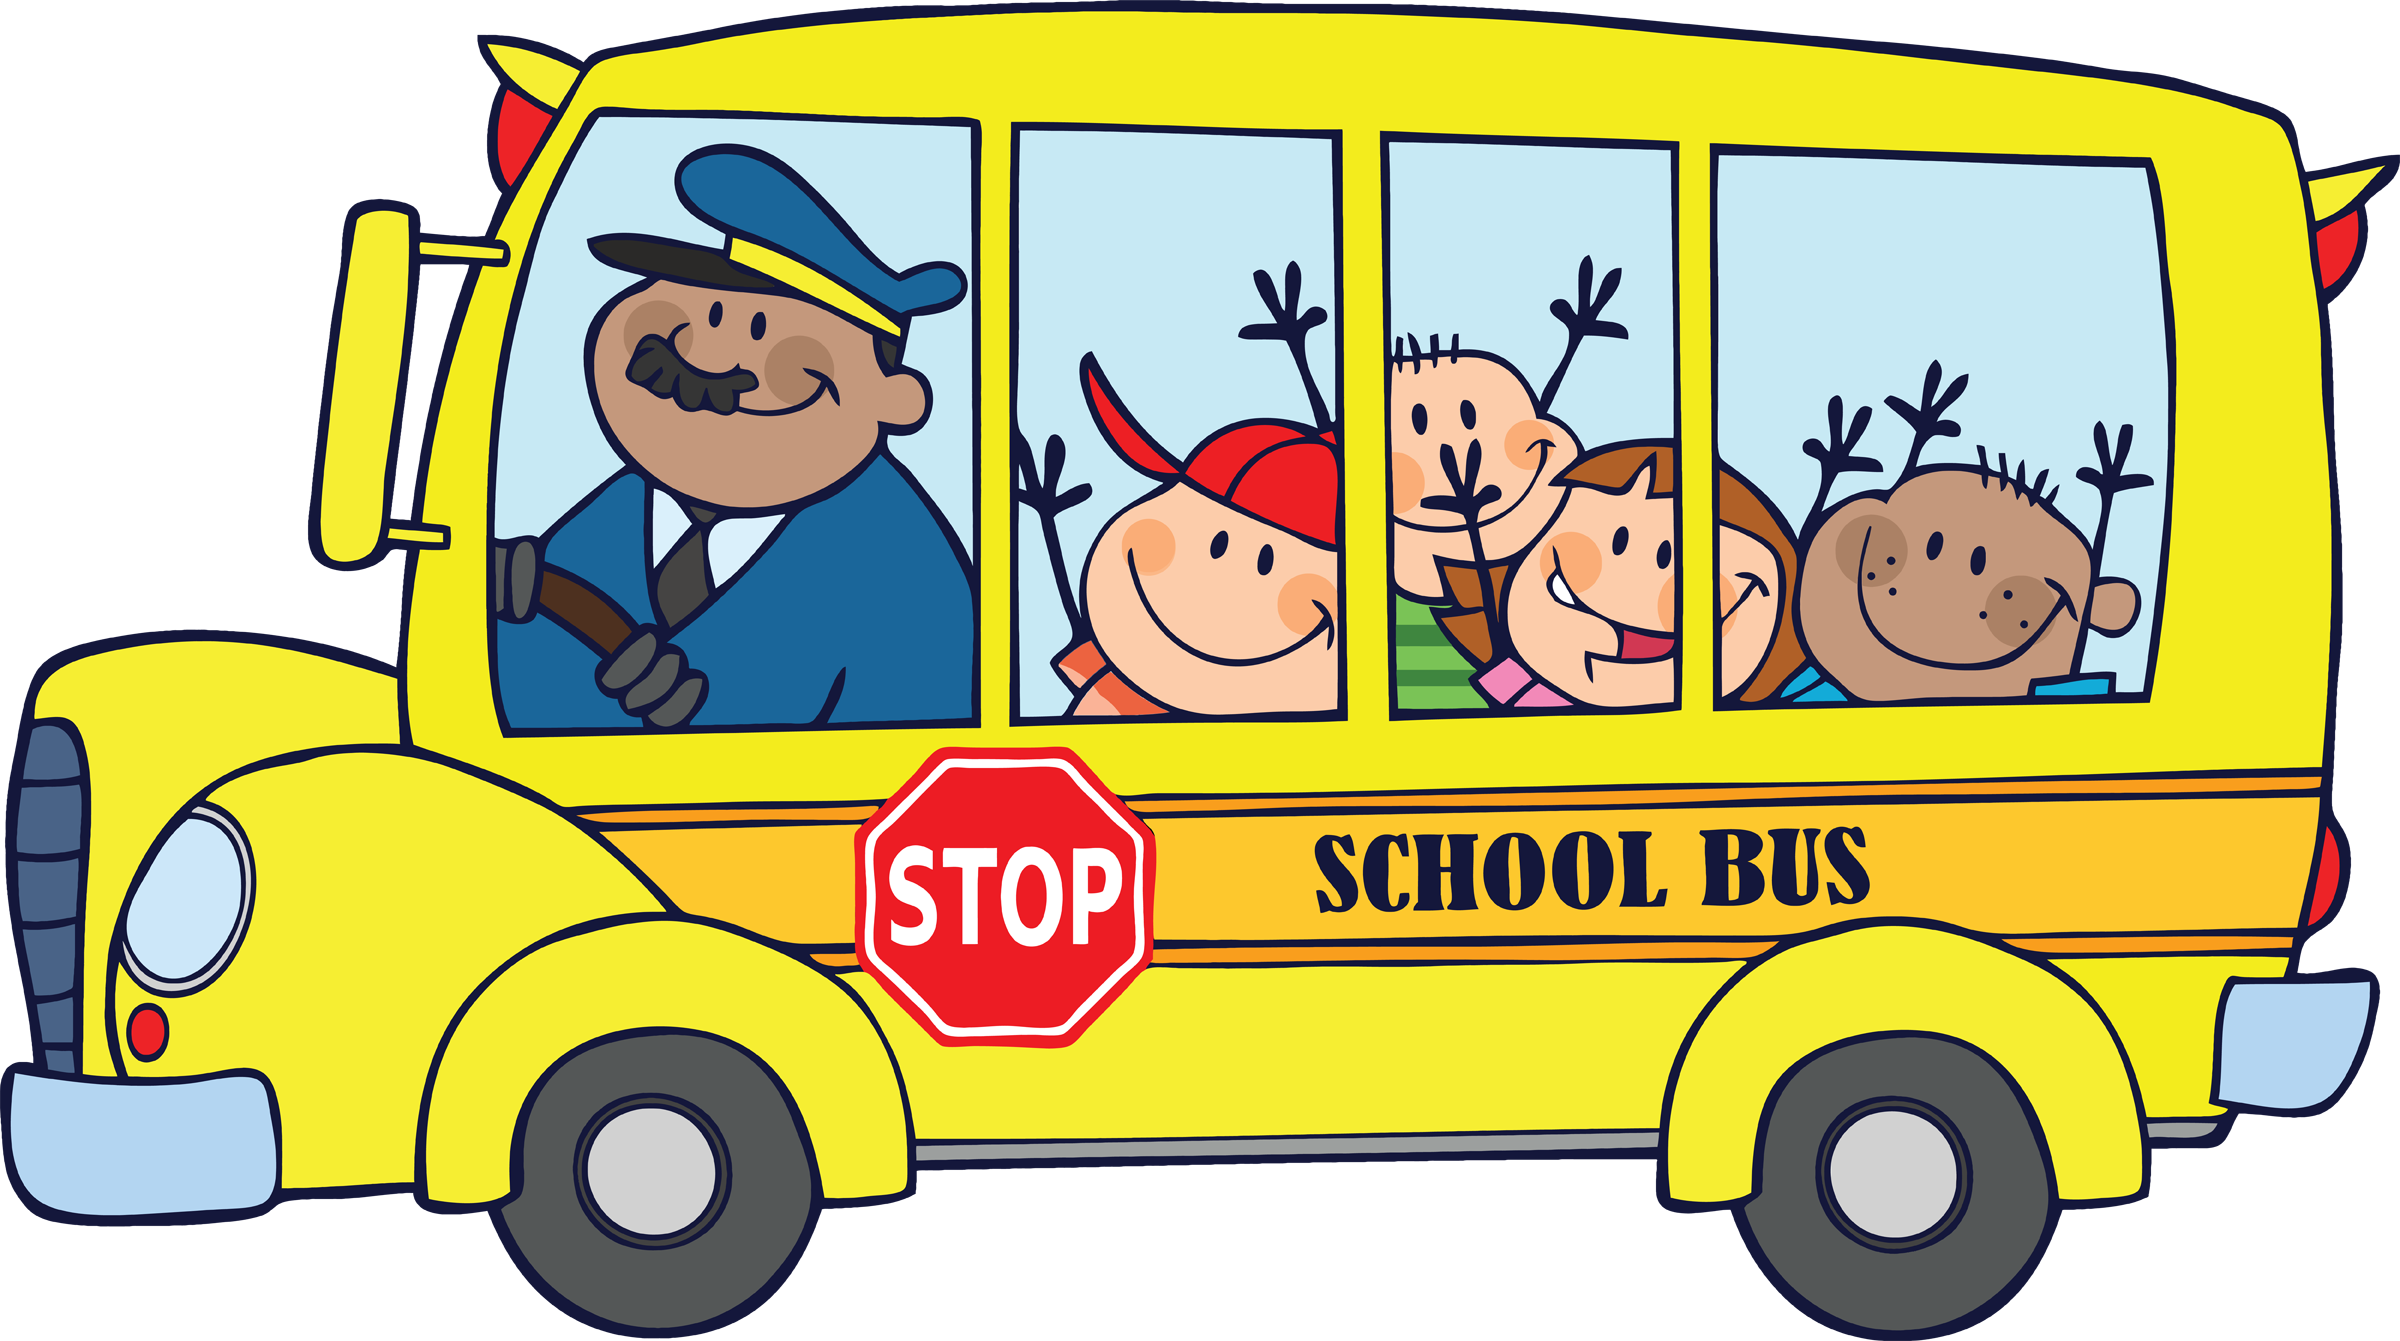 School Bus Clip Art For Kids | Clipart Panda - Free Clipart Images